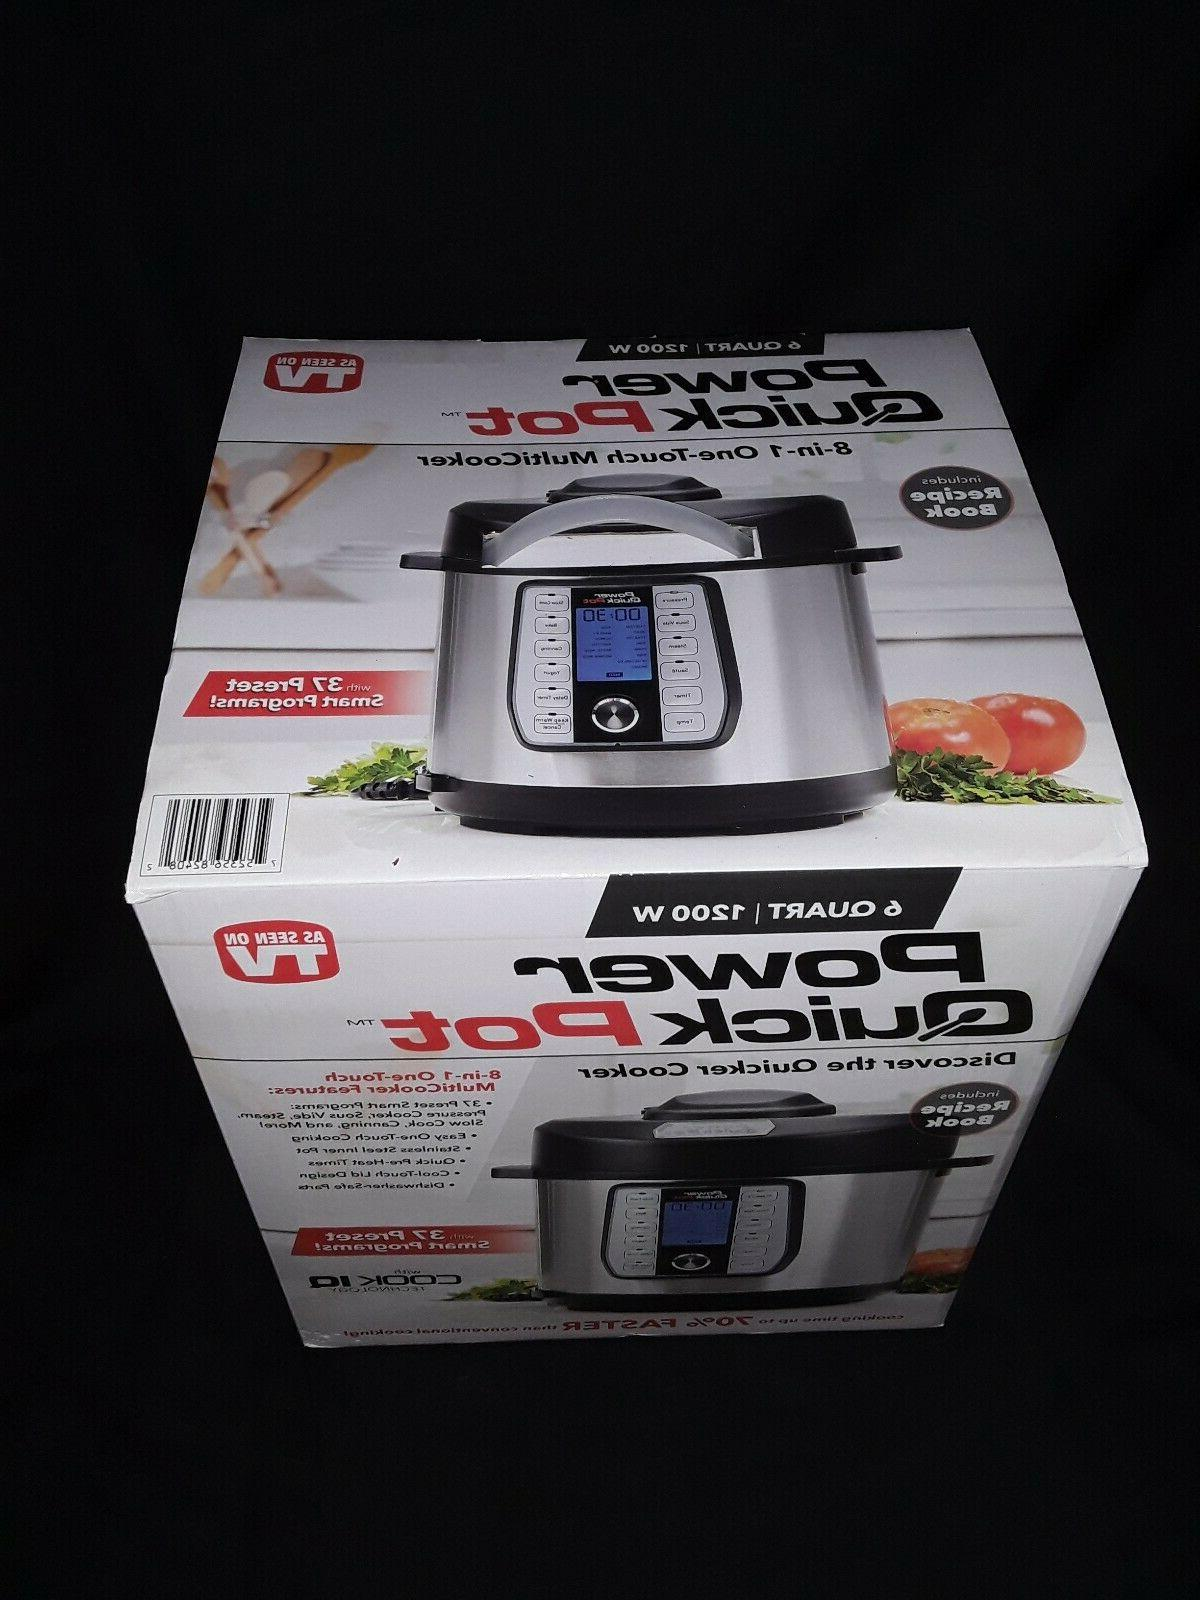 POWER Quart One Touch Multi Cooker Features